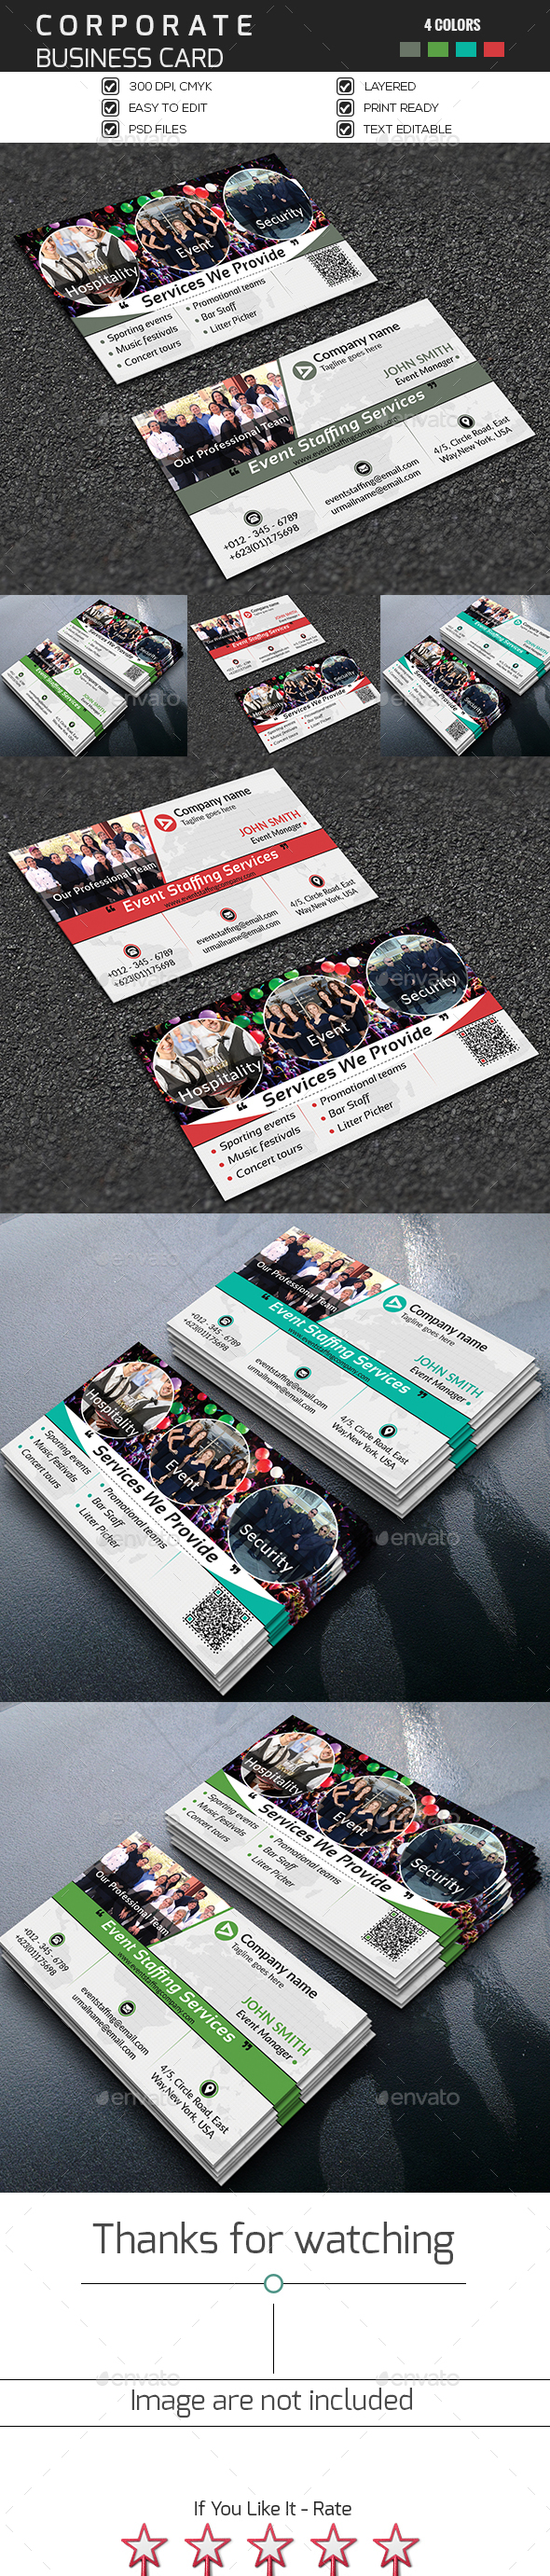 Event Staffing Business Card - Corporate Business Cards